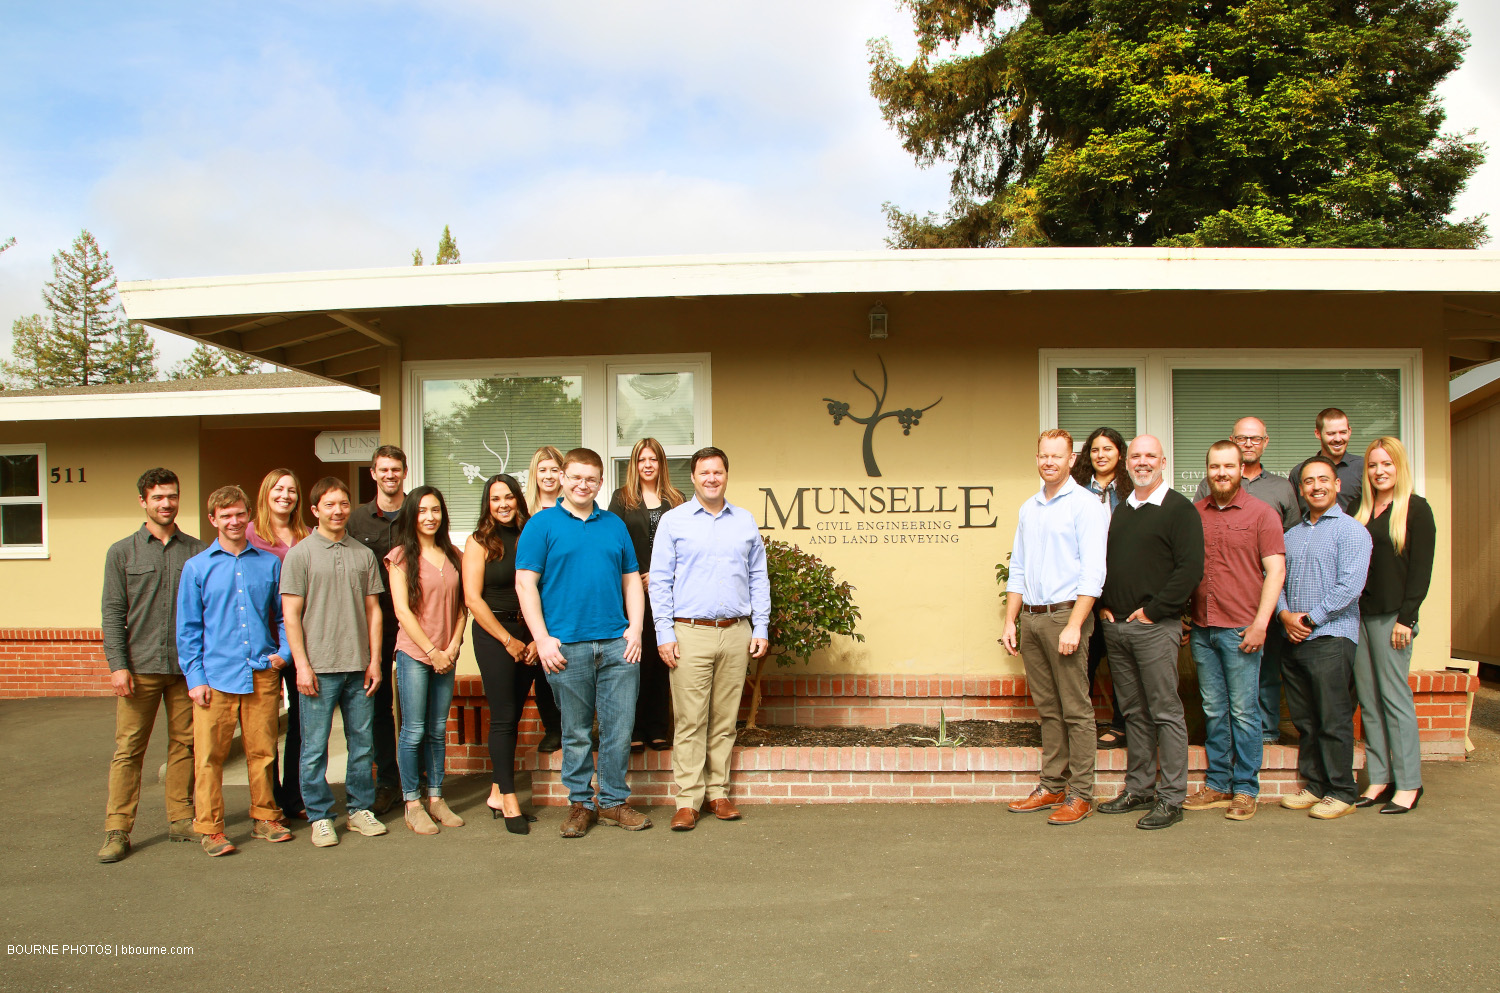 munselle civil engineering team standing in front of office building. 511. munselle civil engineering and land surveying